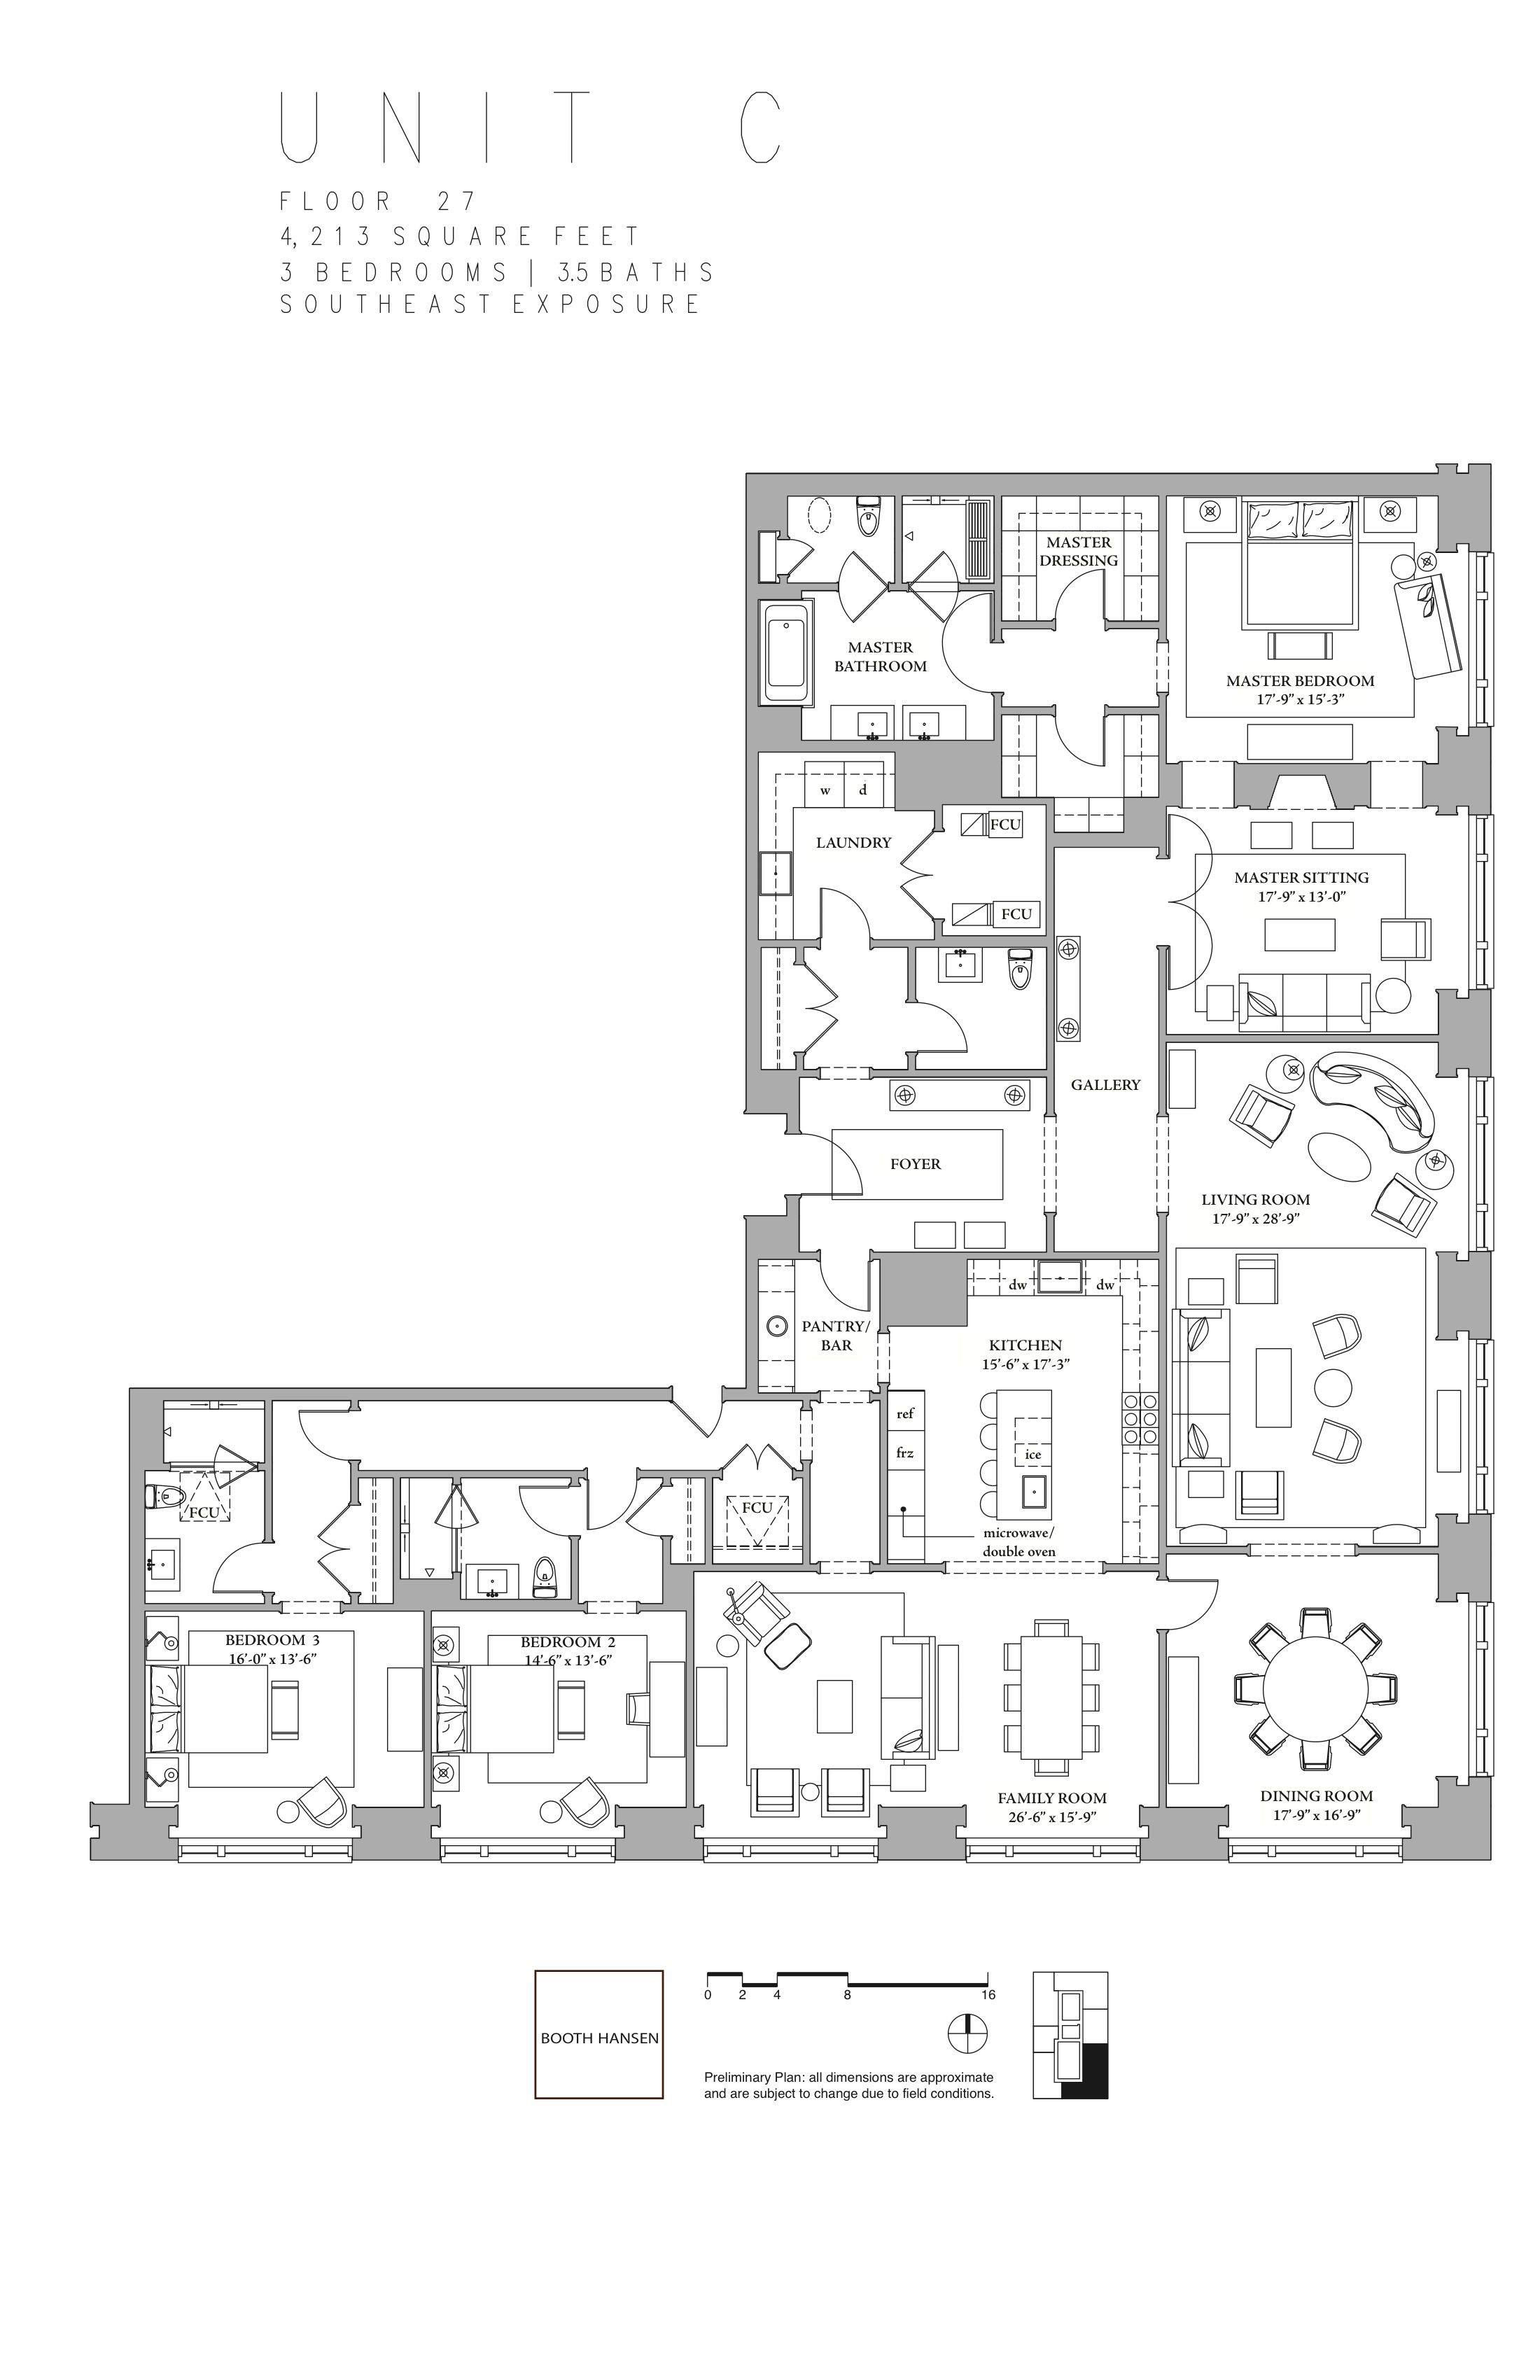 900 North Michigan Avenue Apt C What I D Imagine The Residential Floor Plan Of An International Sty Luxury Floor Plans Apartment Floor Plans House Floor Plans